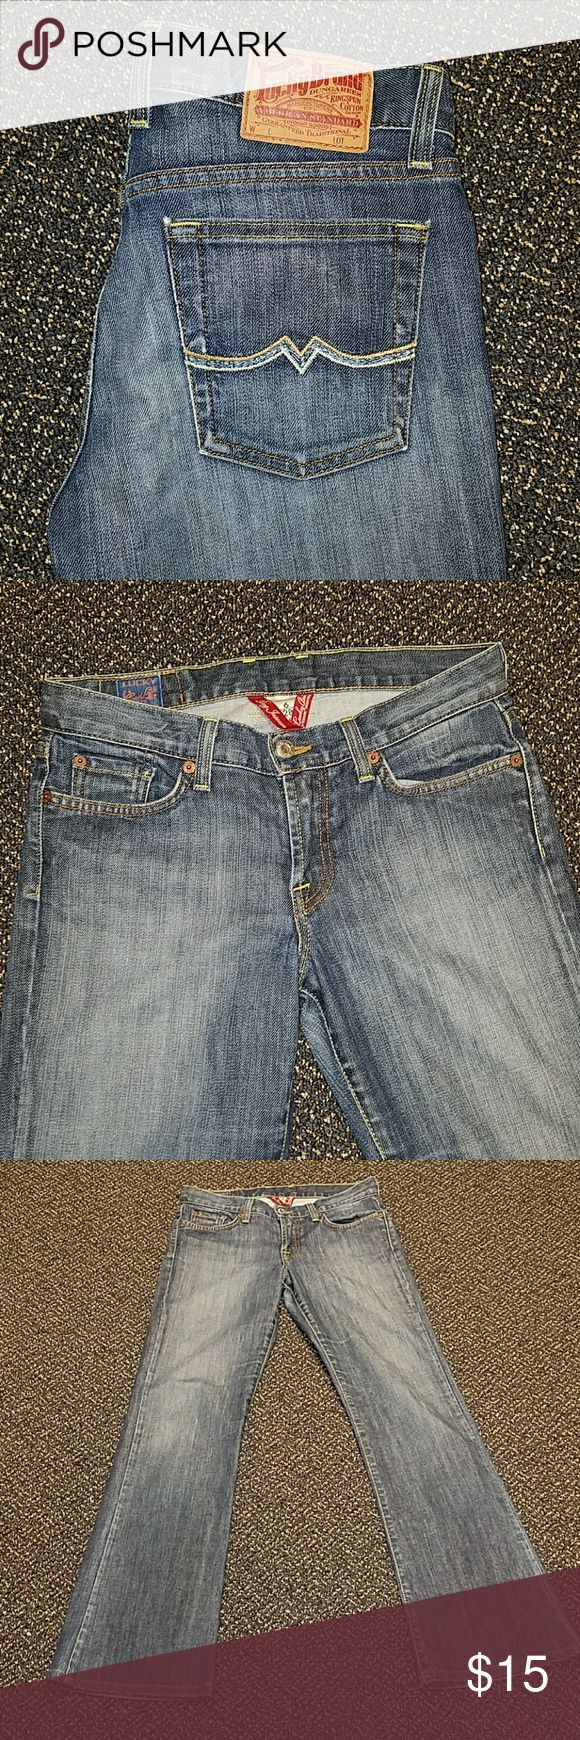 Lucky jeans Lucky Jeans with stitched design on pockets  Measurements unstretched  Waist 14 1/2 inches across  Hips 18 1/2 inches across  Rise 8 1/2 inches  Inseam 30 inches Lucky Brand Jeans Flare & Wide Leg